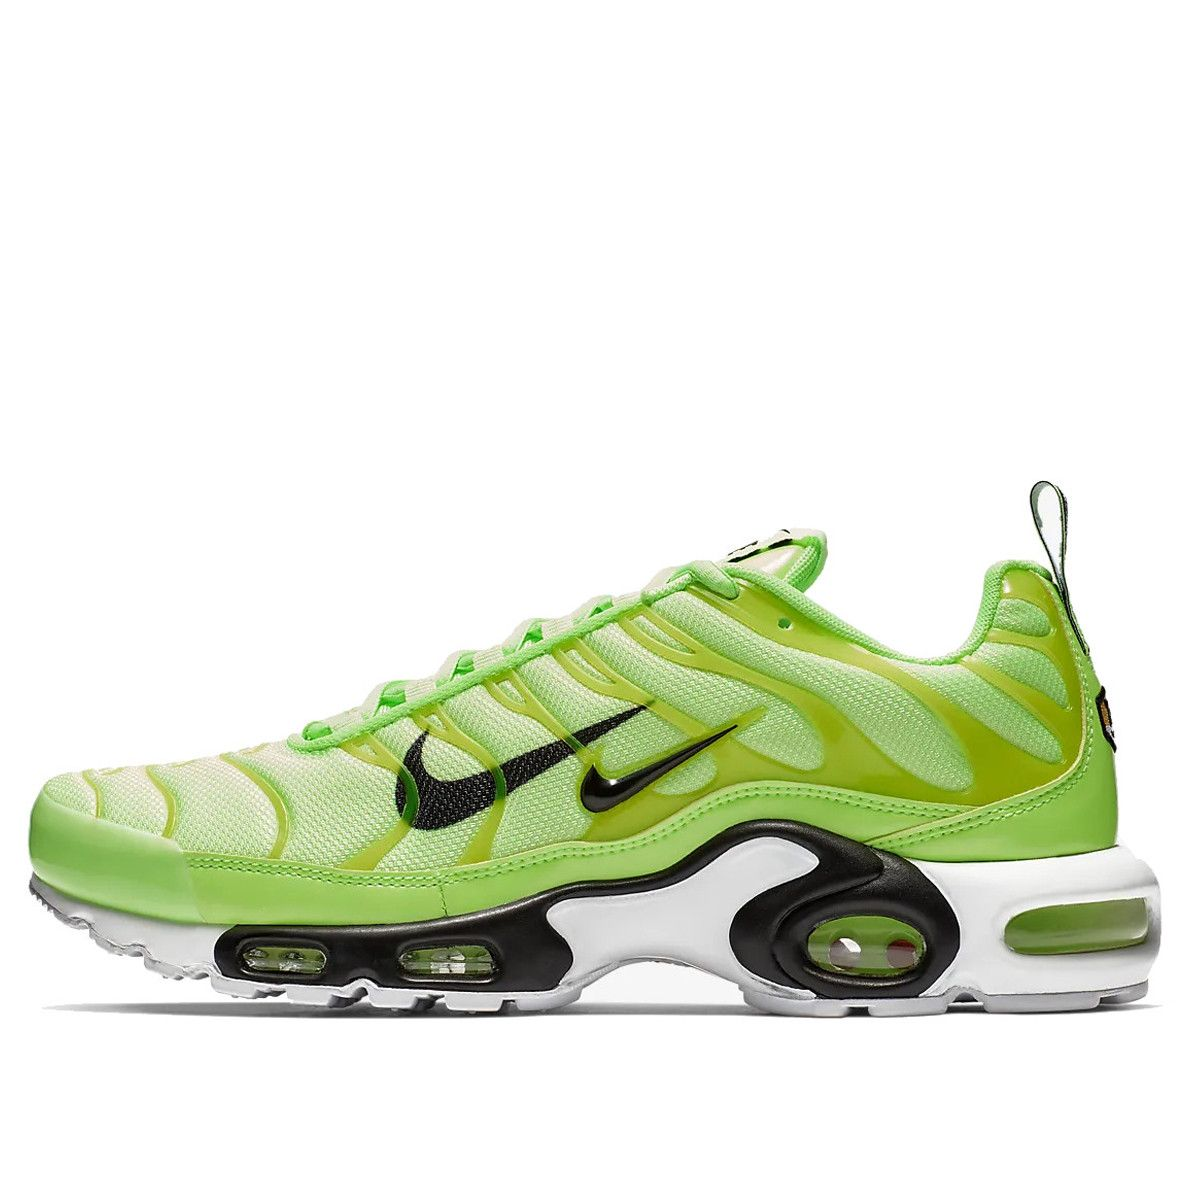 Basket Nike AIR MAX PLUS PREMIUM Ref. 815994 300 Pegashoes